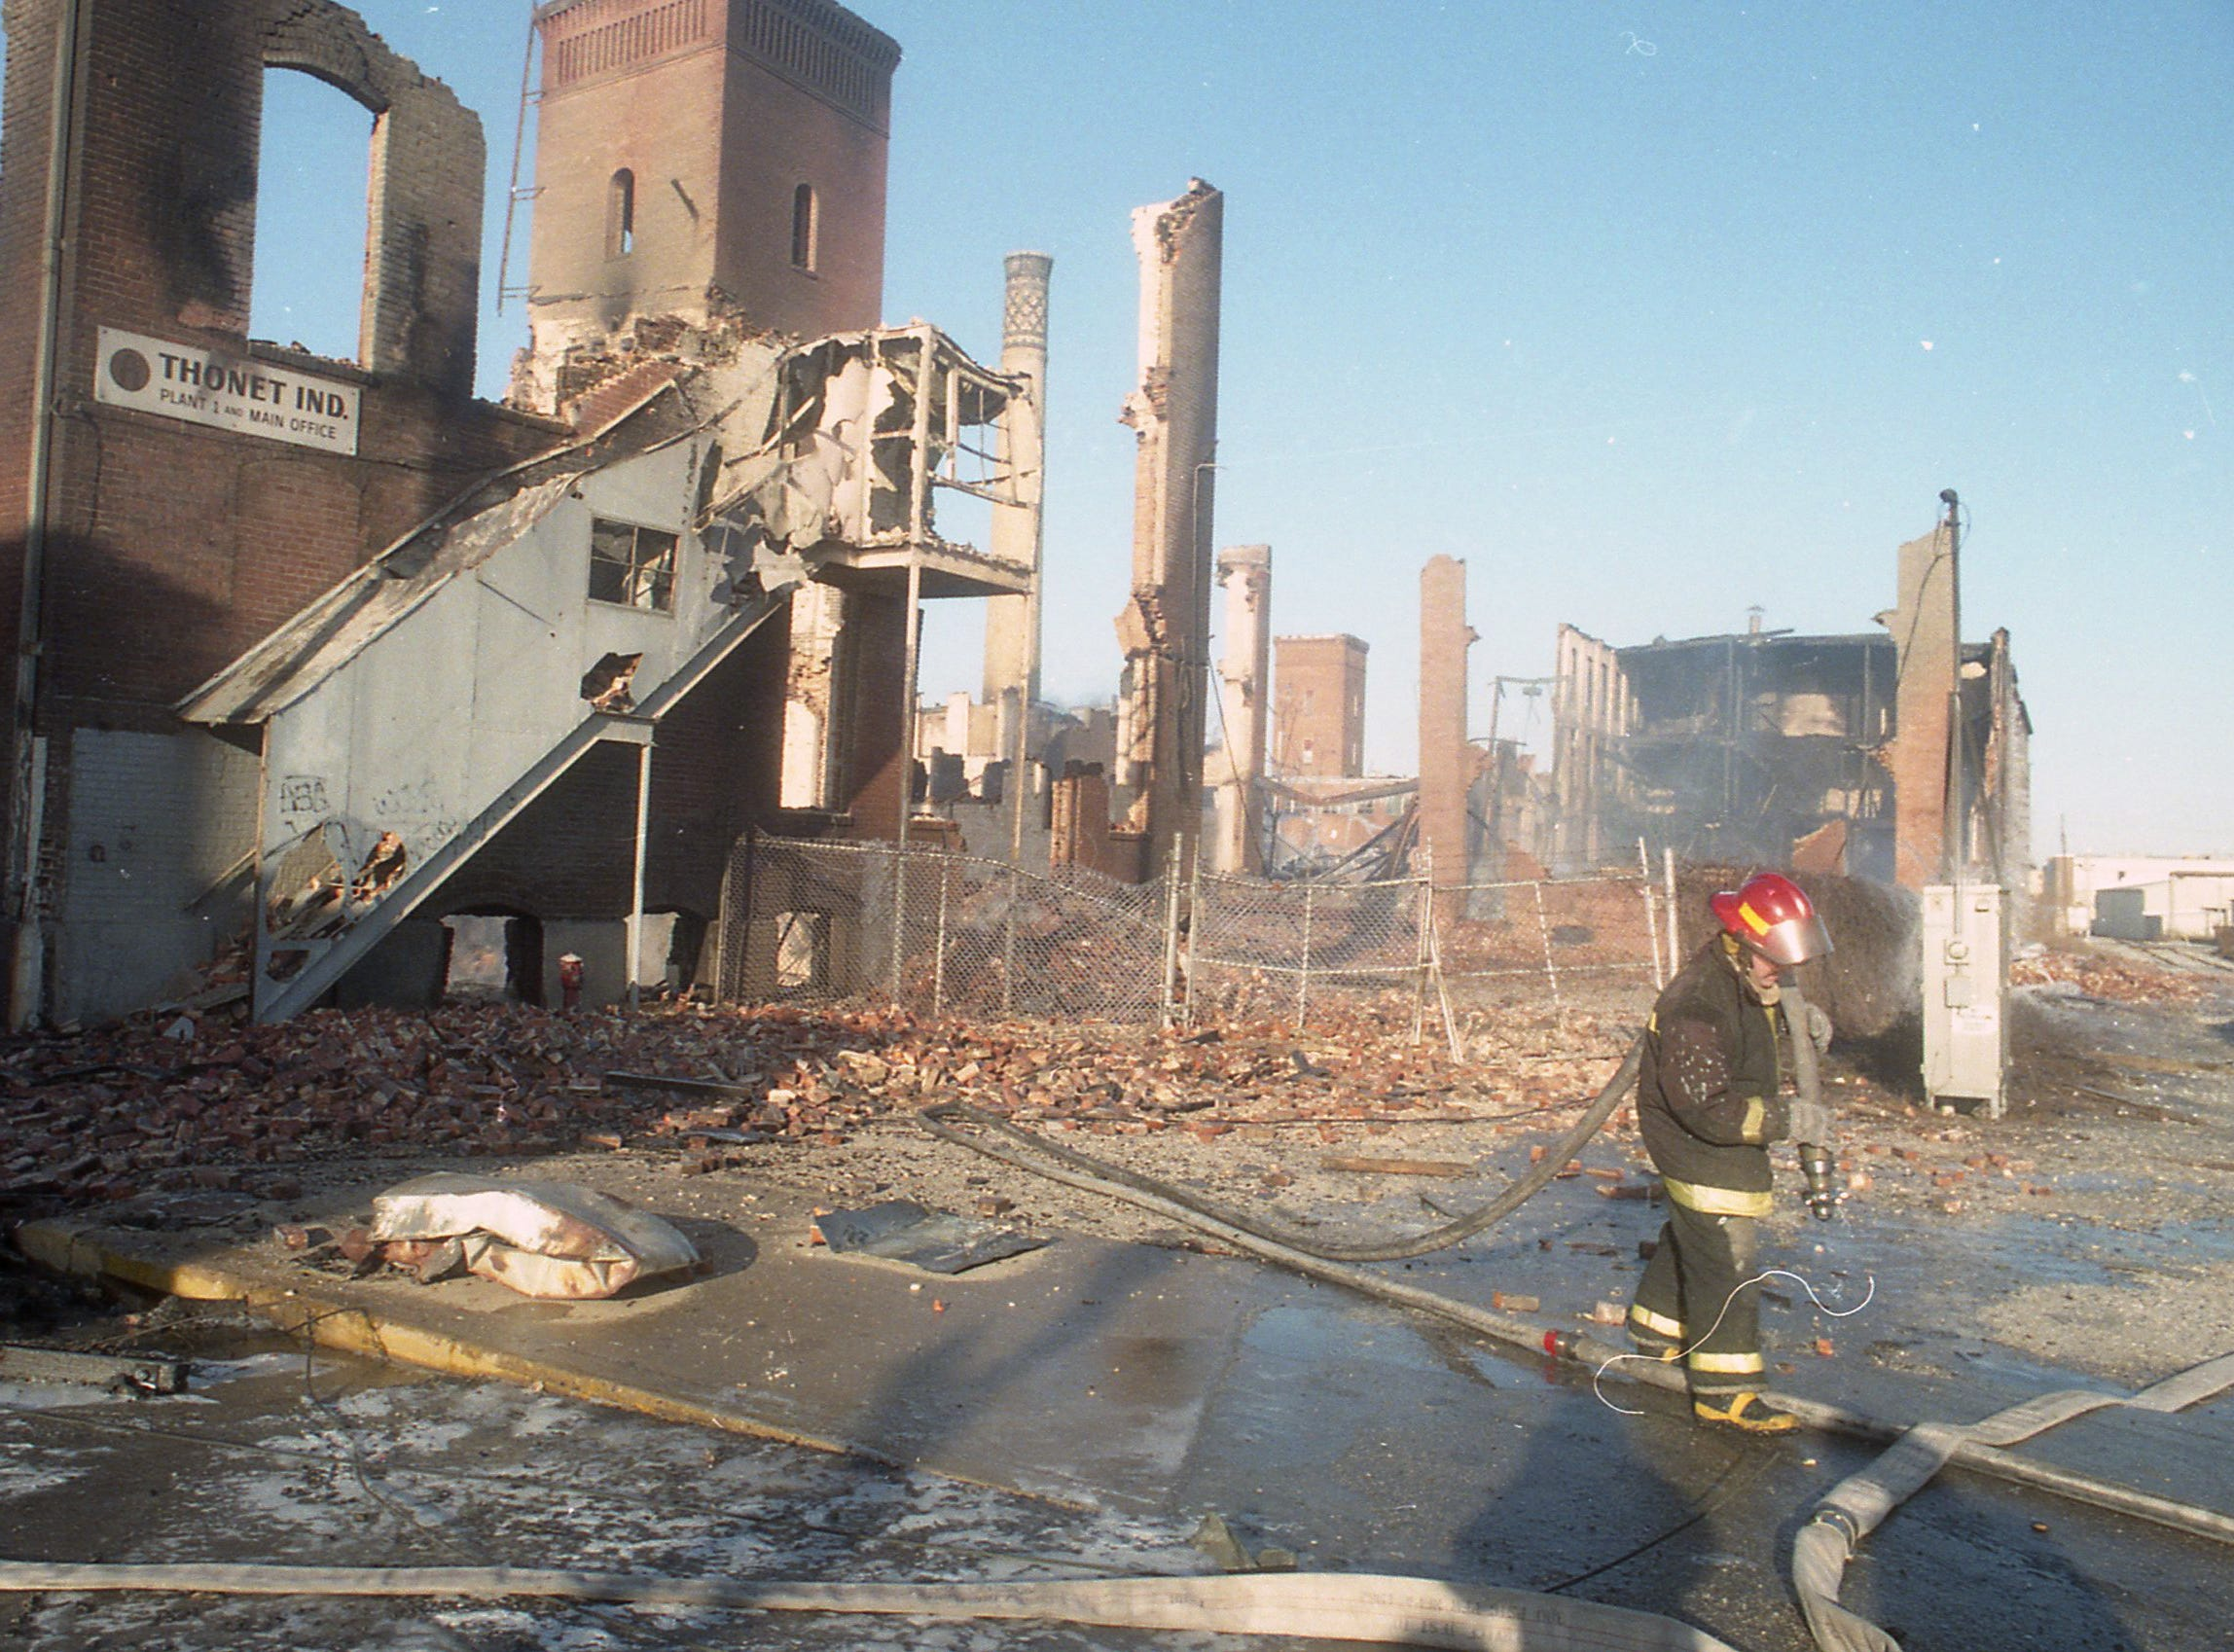 Firefighters hit hot spots the morning after the fire. A fire began at the former Thonet Furniture plant at 491 East Princess Street in York on December 11, 1993. Eventually, the four alarm fire spread through the complex of buildings and several other properties.